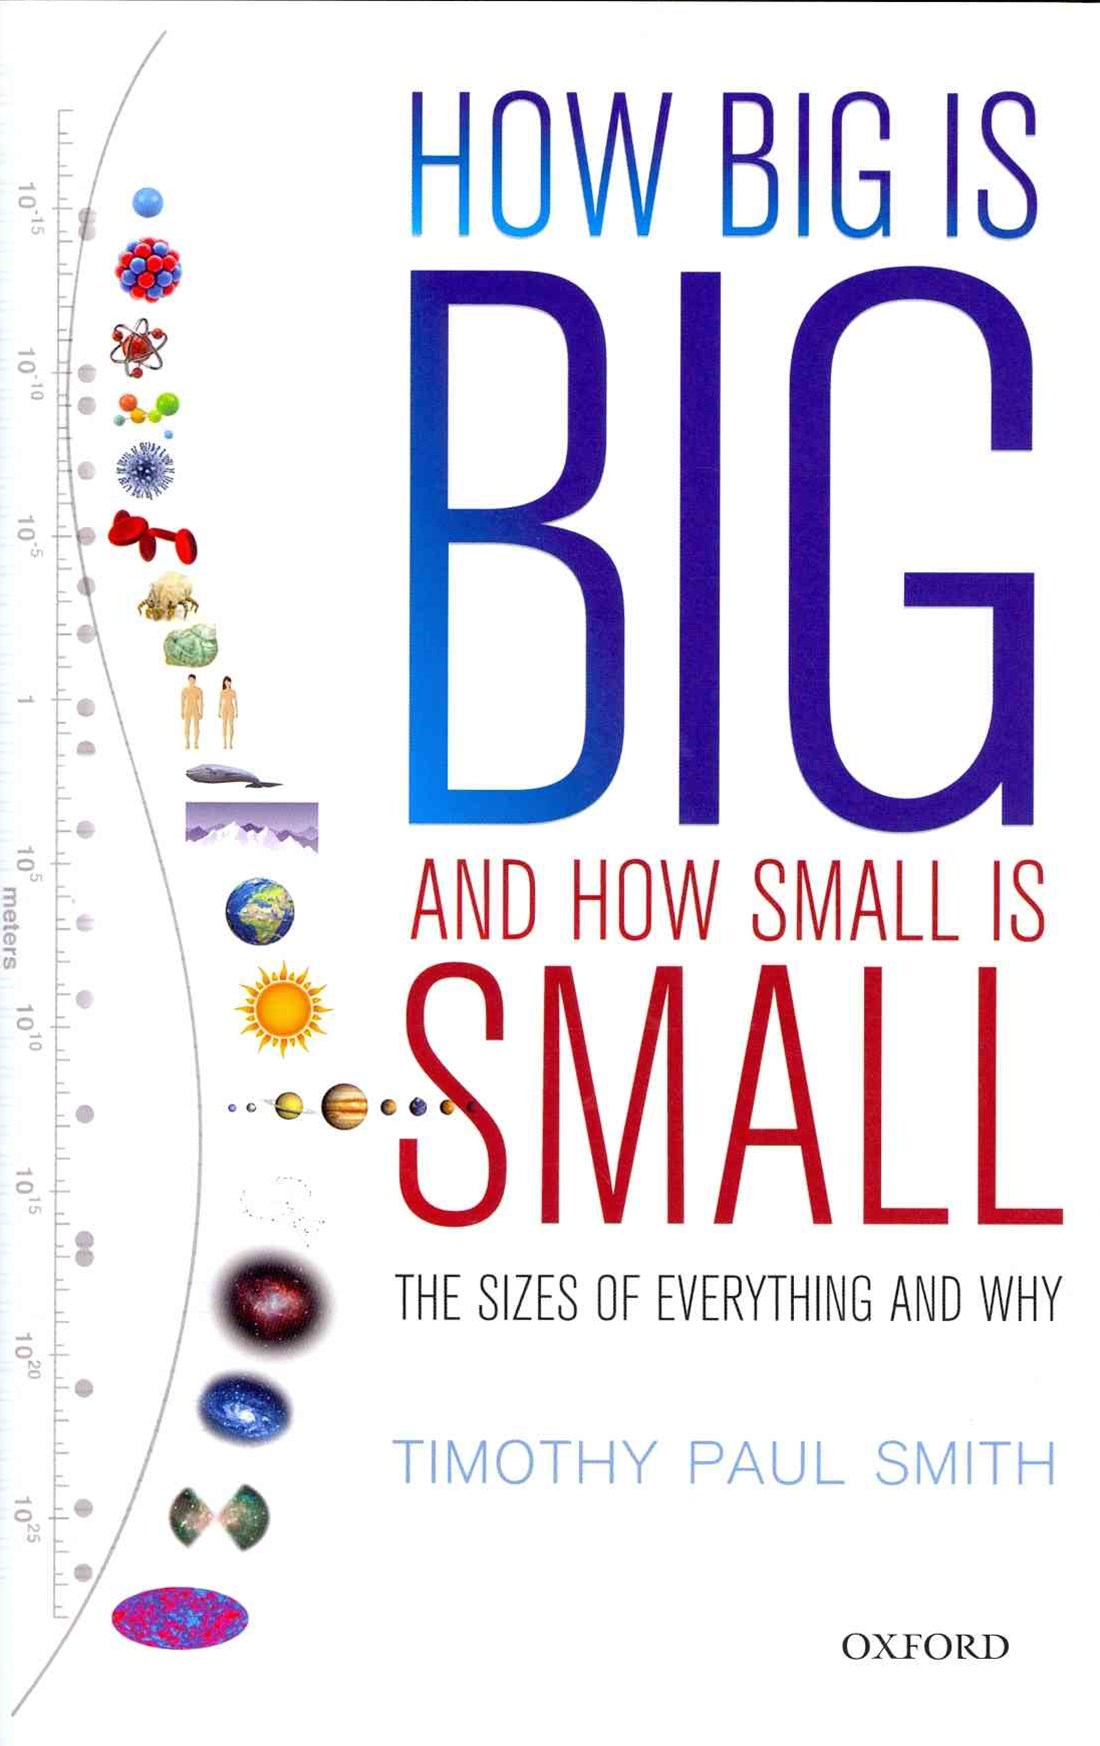 How Big is Big and How Small is Small?